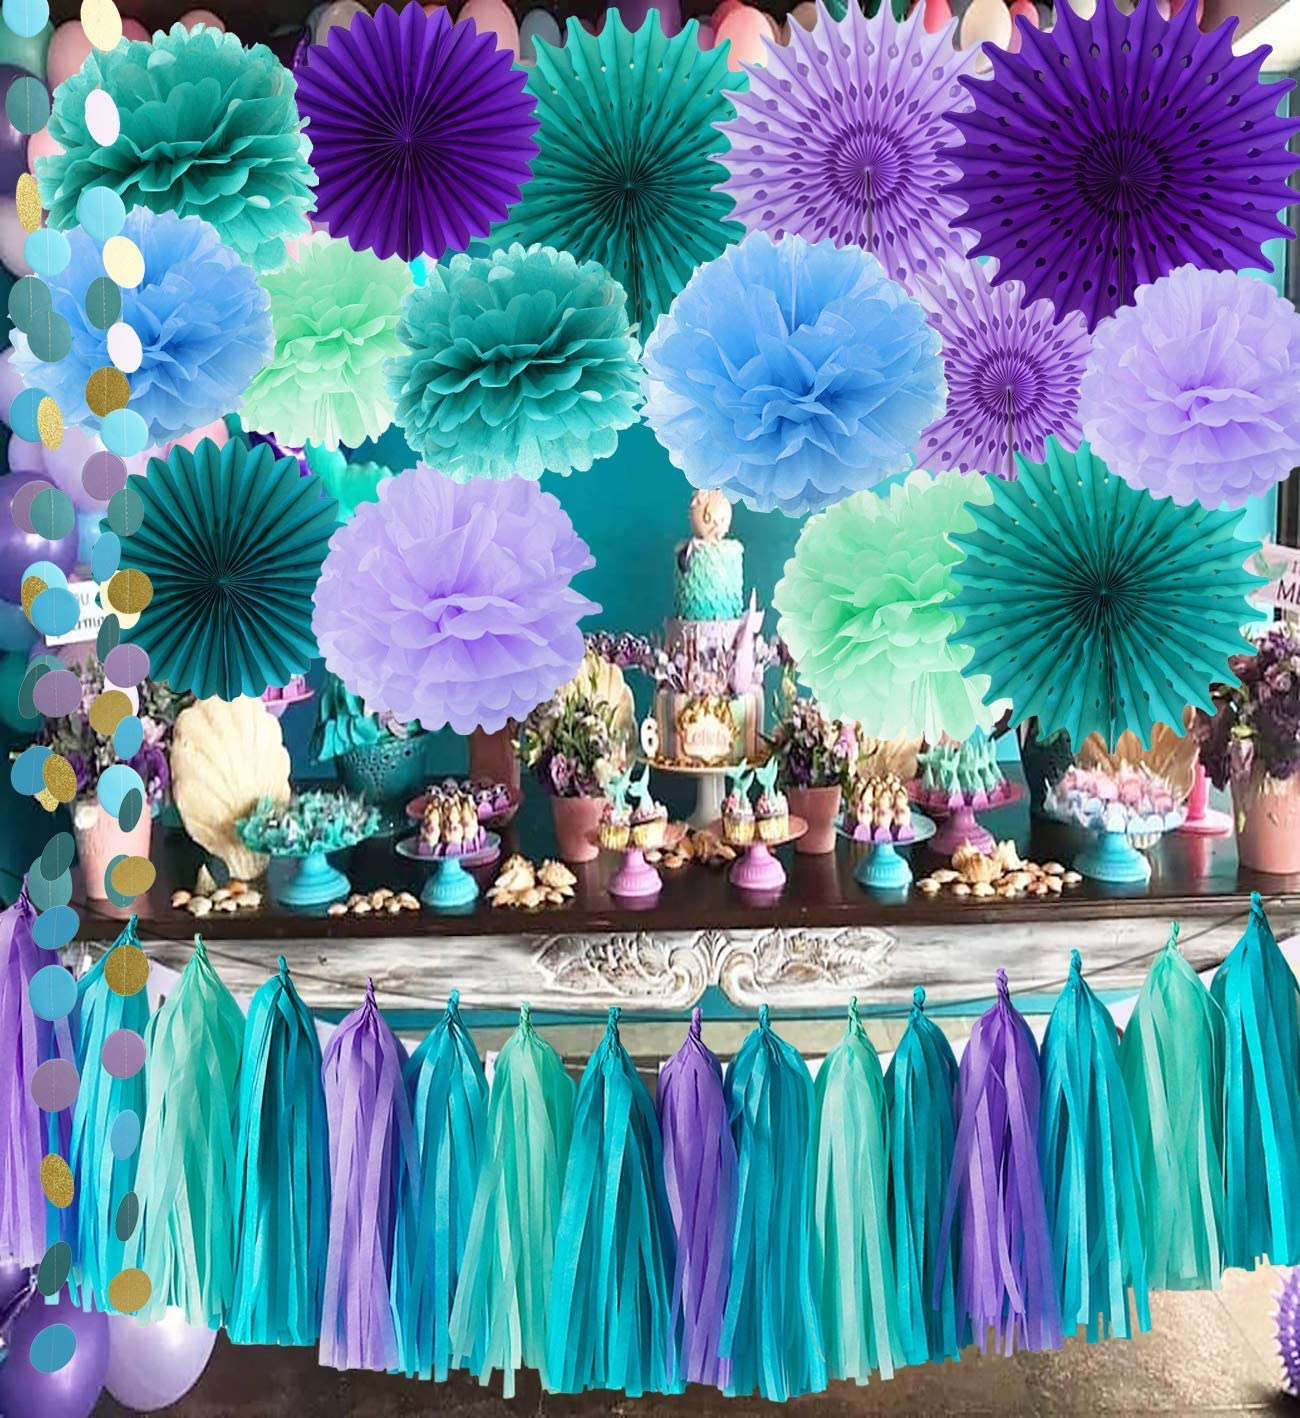 Mermaid Birthday Party Decorations/Under The Sea Party Teal Purple Blue Mint Tissue Pom Poms Paper Fans Baby Shower Decorations Purple Mermaid Birthday Party Supplies/Mermaid Bridal Shower Decor